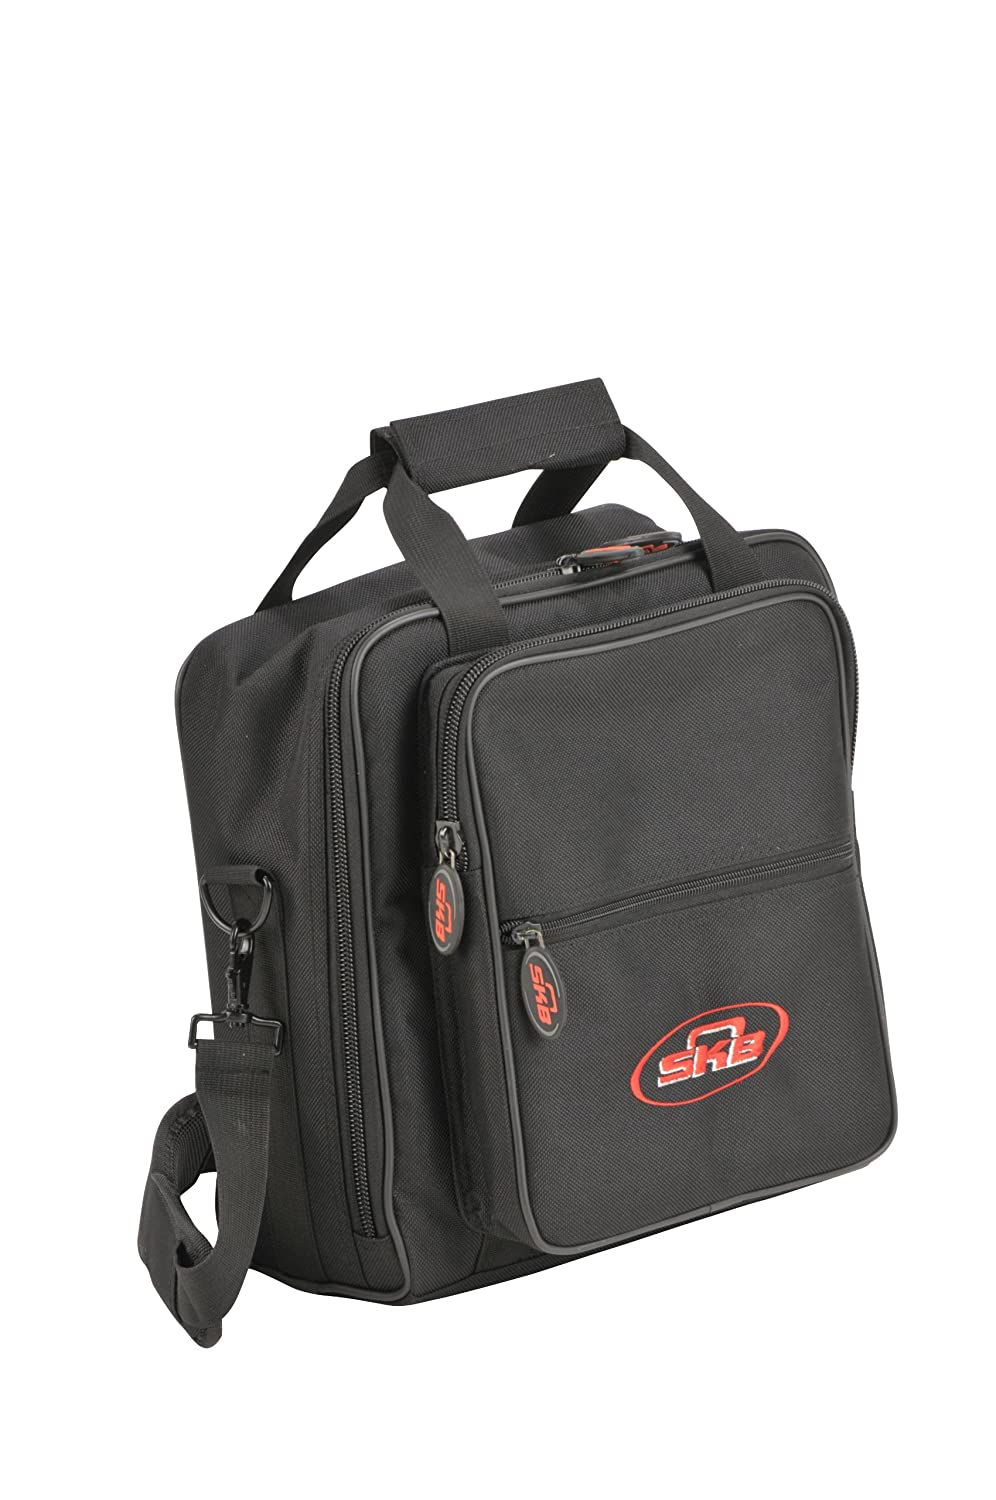 SKB 1SKB-Ub1212 Borsa Universale per Mixer o Attrezzatura Equipment case